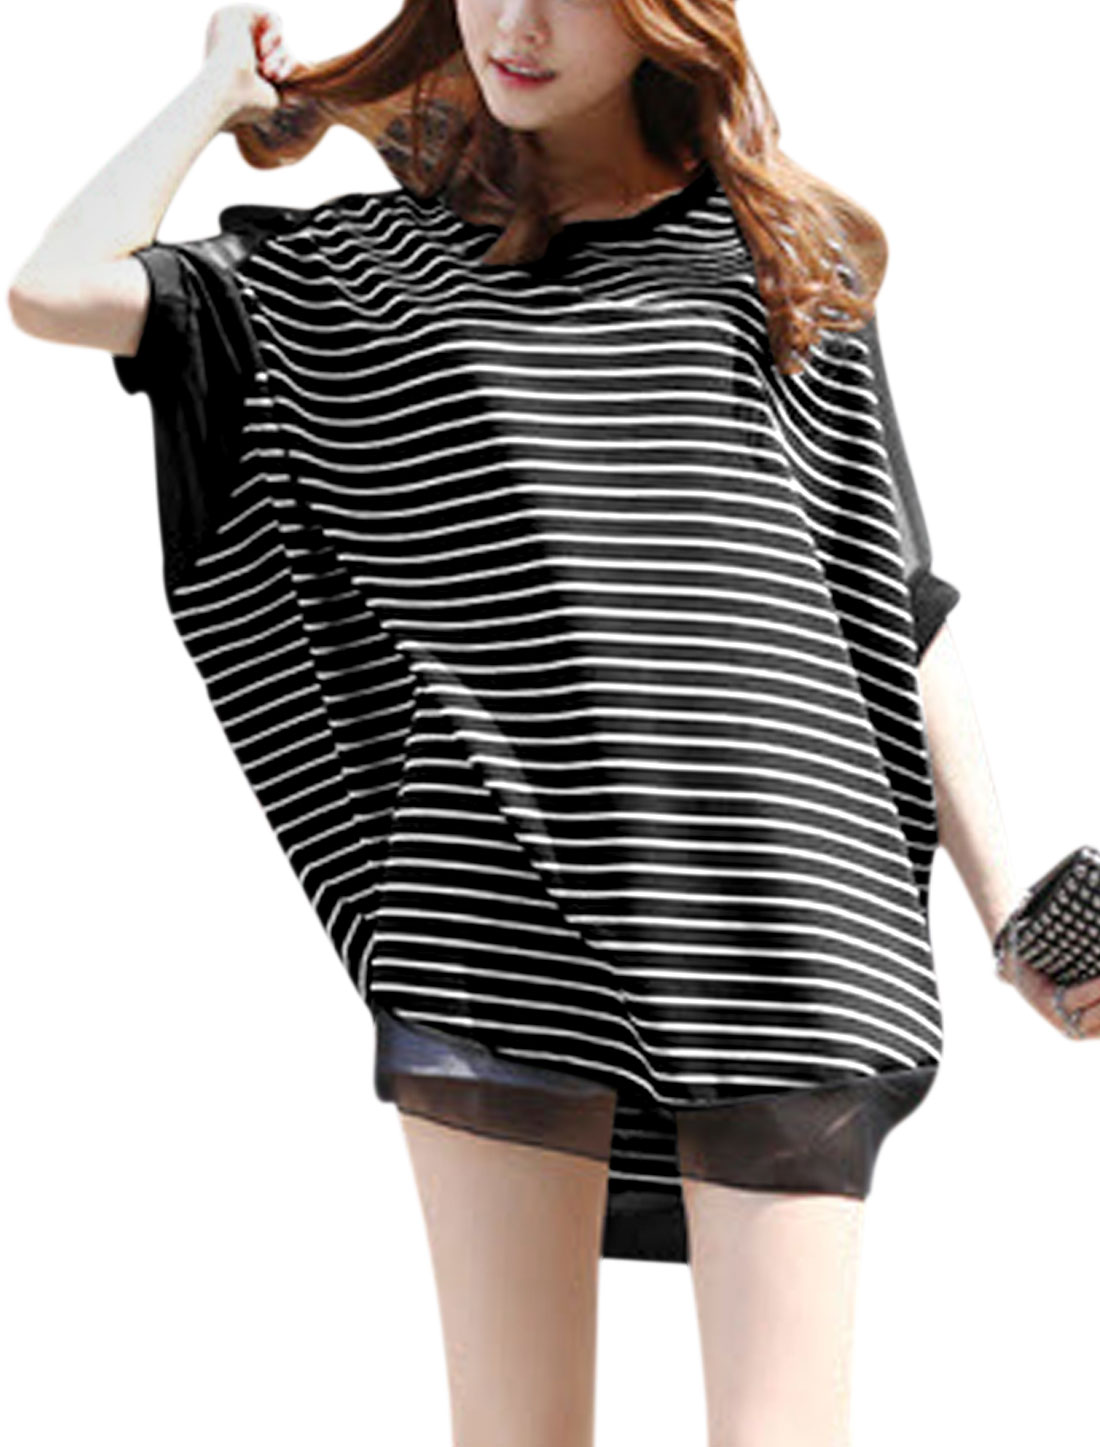 Woman Stripes Chiffon Panel Loose Fit Casual Tunic Top Black L